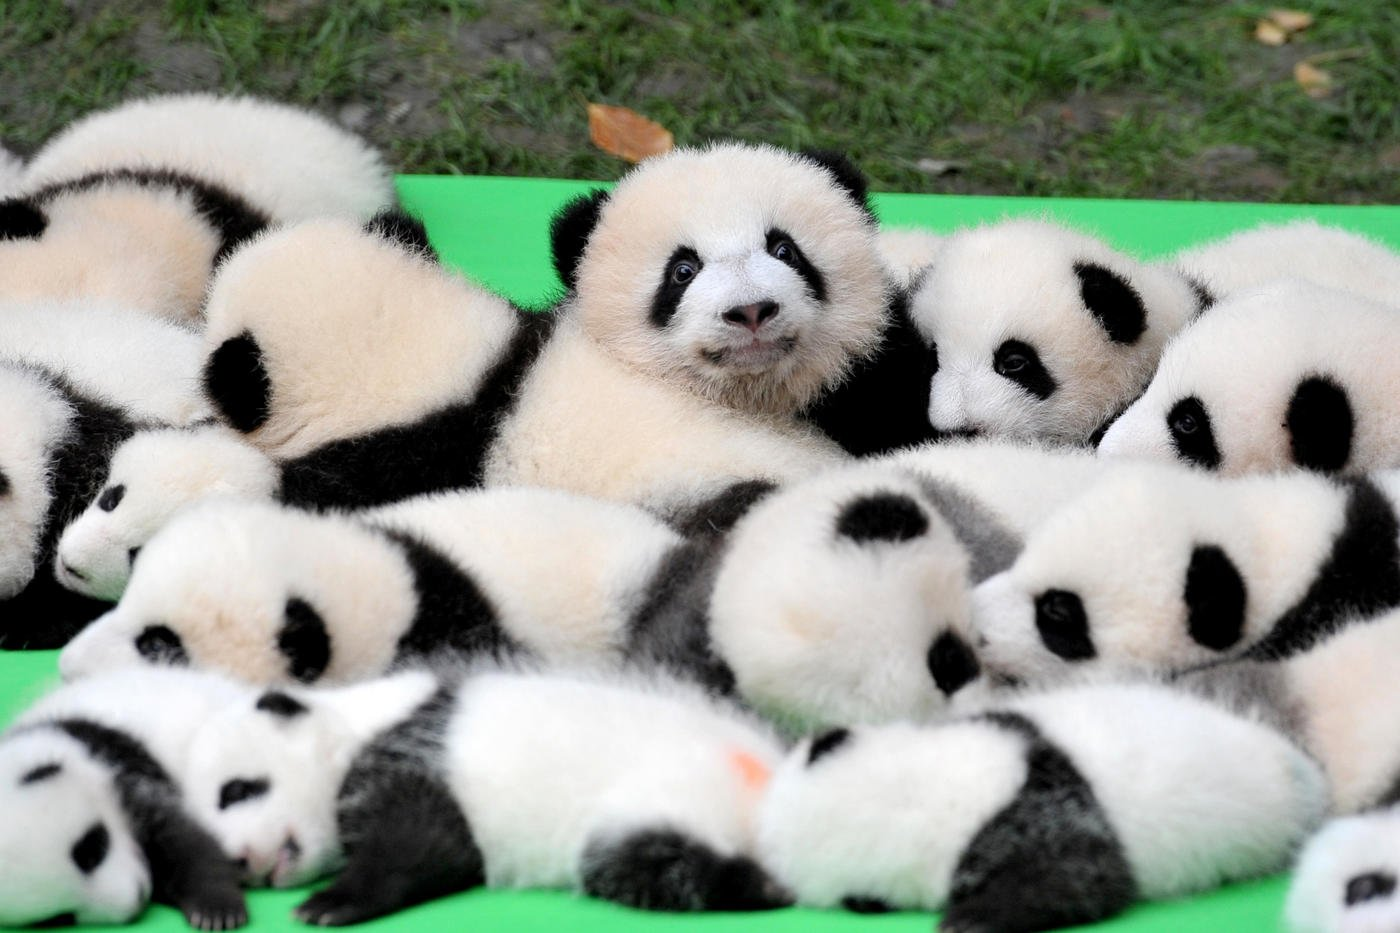 CHENGDU, CHINA - SEPTEMBER 29: 23 giant panda cubs make their debut to the public at Chengdu Research Base of Giant Panda Breeding on September 29, 2016 in Chengdu, China. All the 23 panda cubs were born in the base this year. (Photo by VCG/VCG via Getty Images)